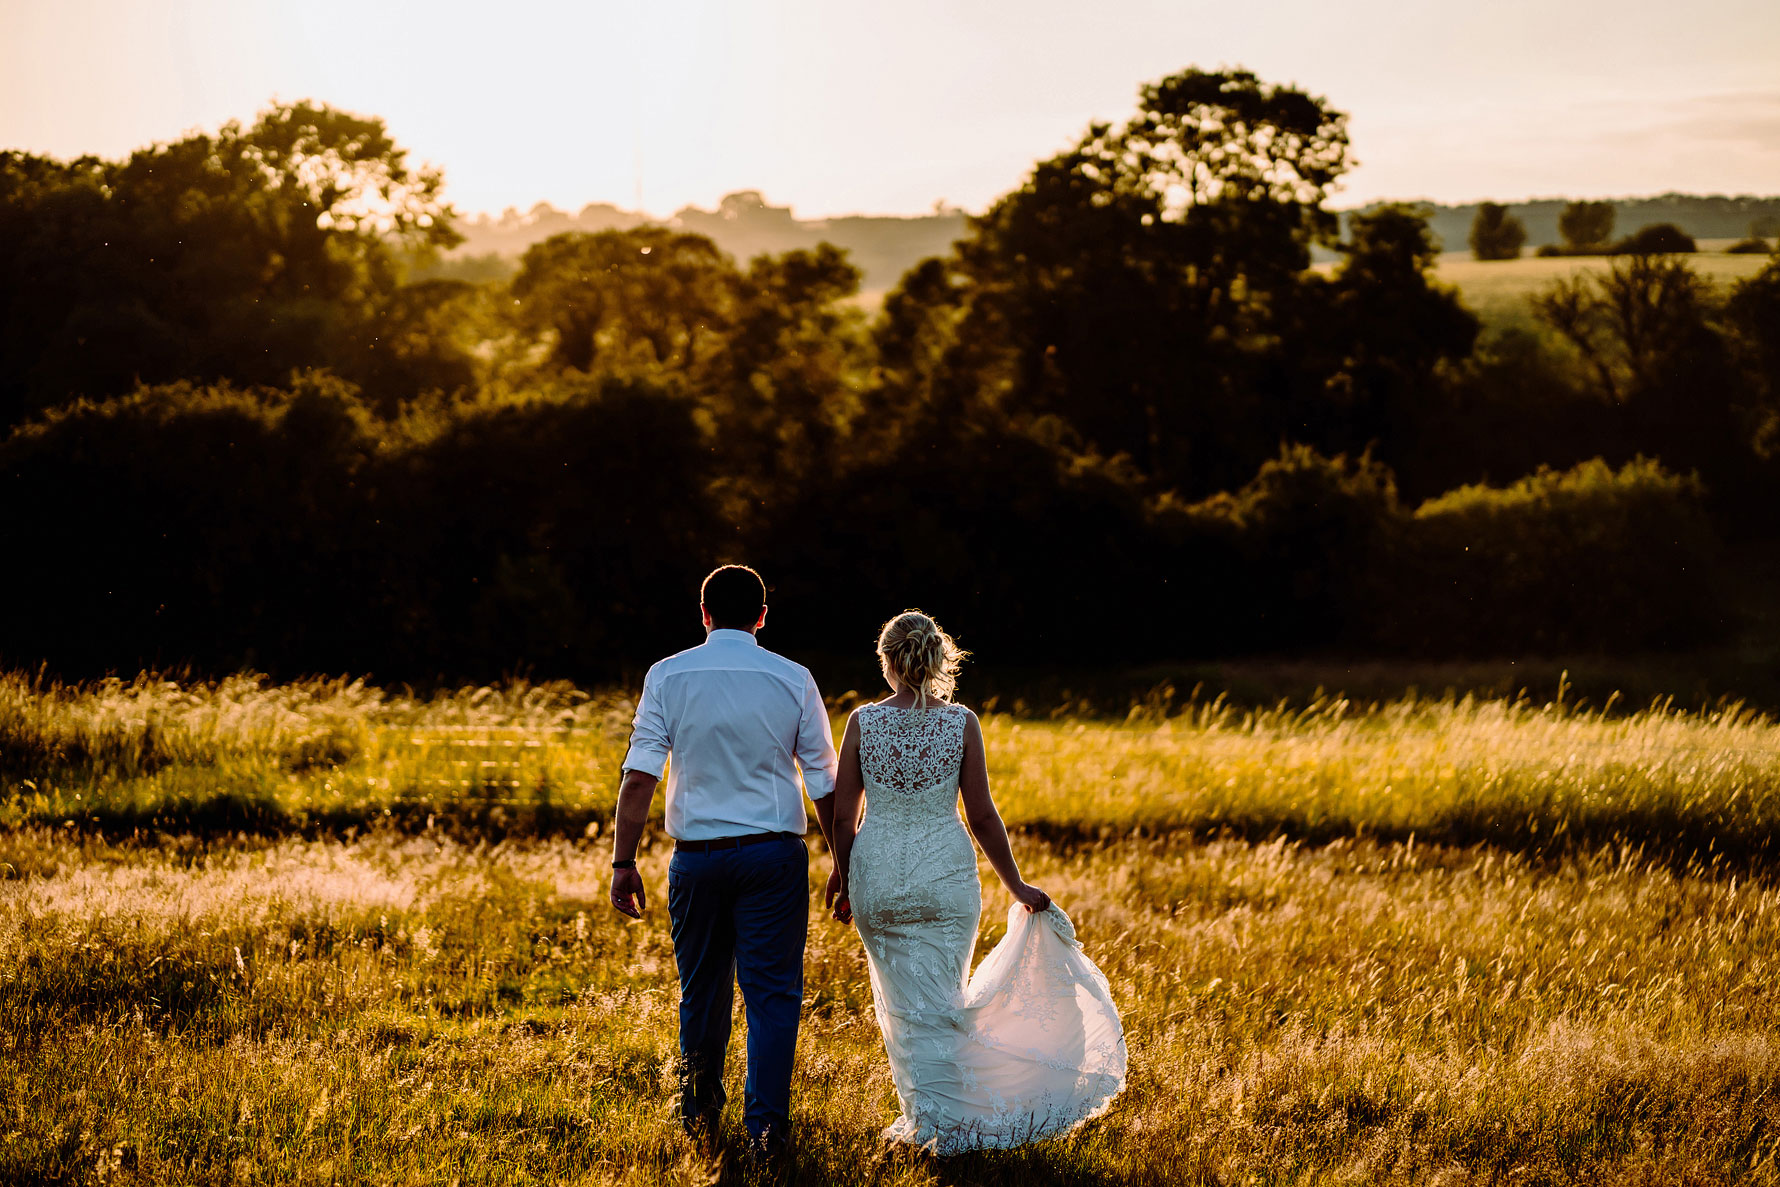 A BEAUTIFUL SUNSET PHOTOGRAPH AT DODFORD MANOR